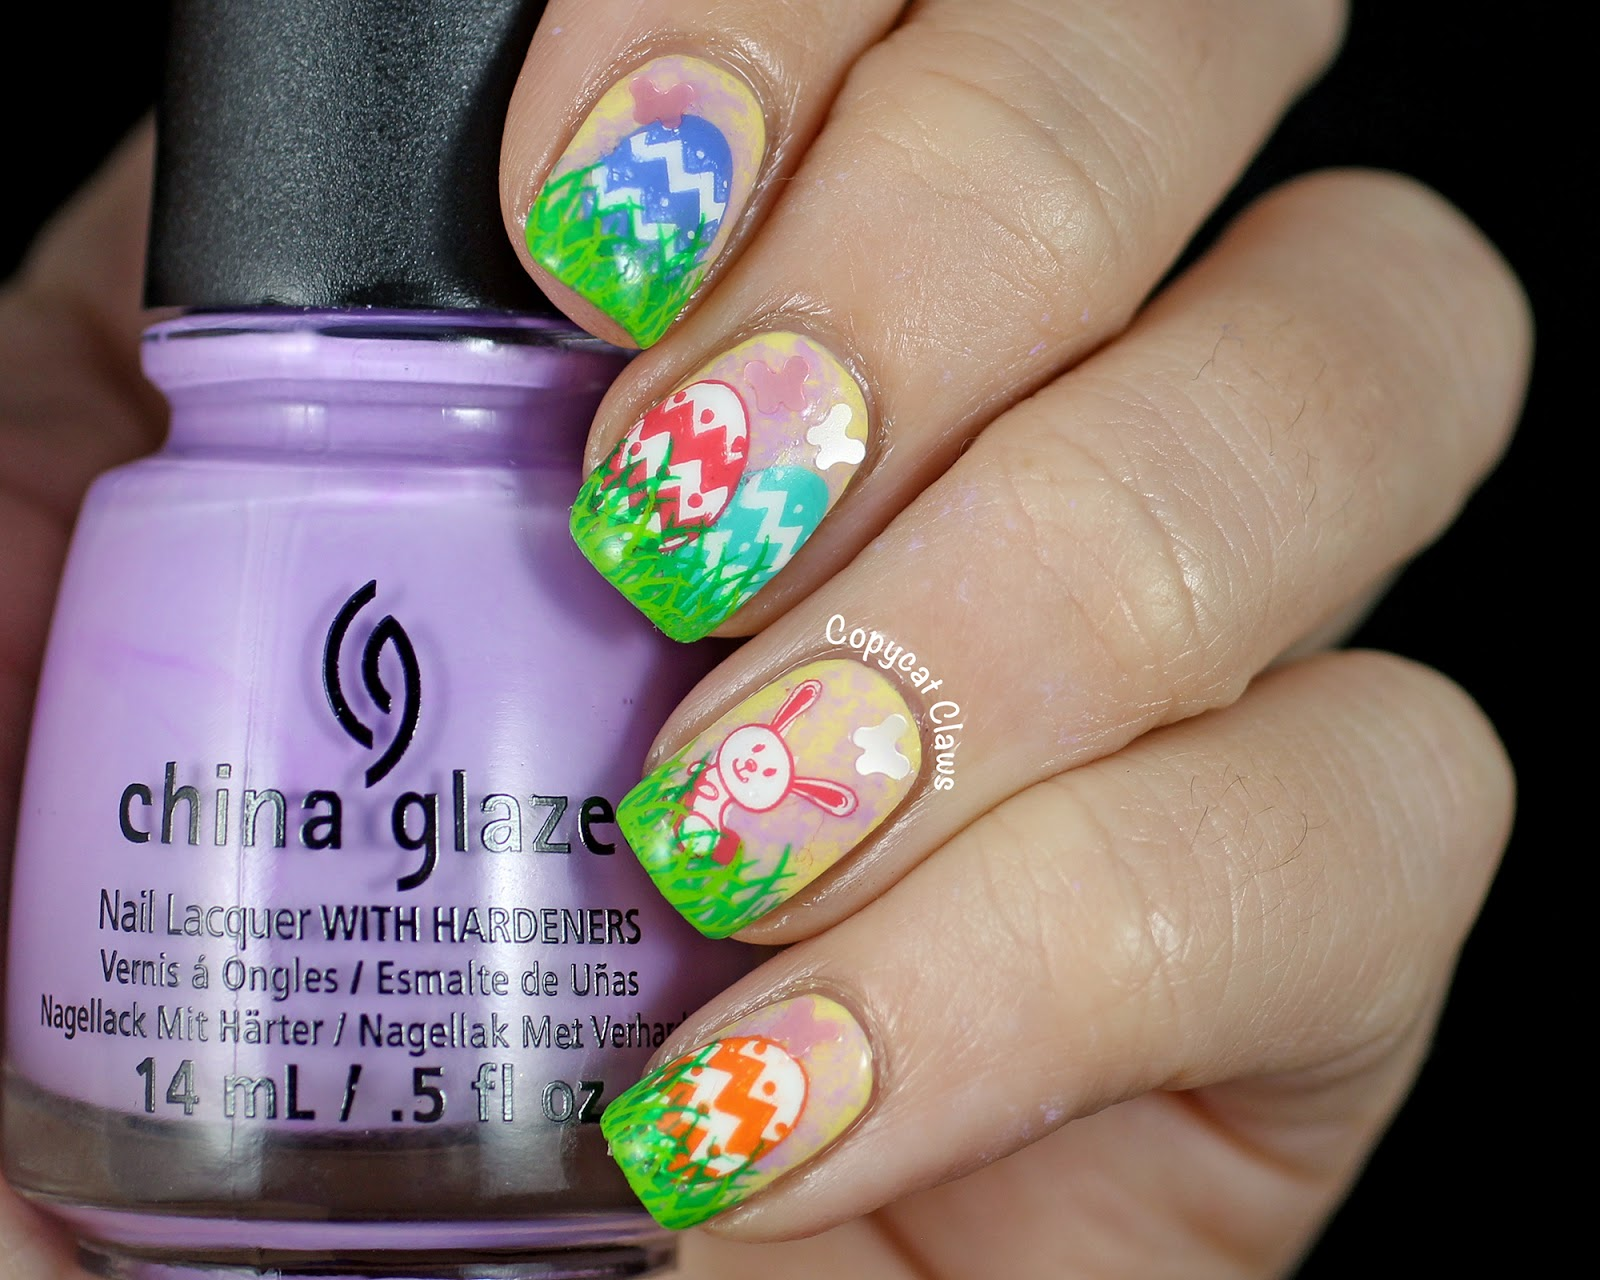 Copycat Claws: Easter Nail Art Challenge